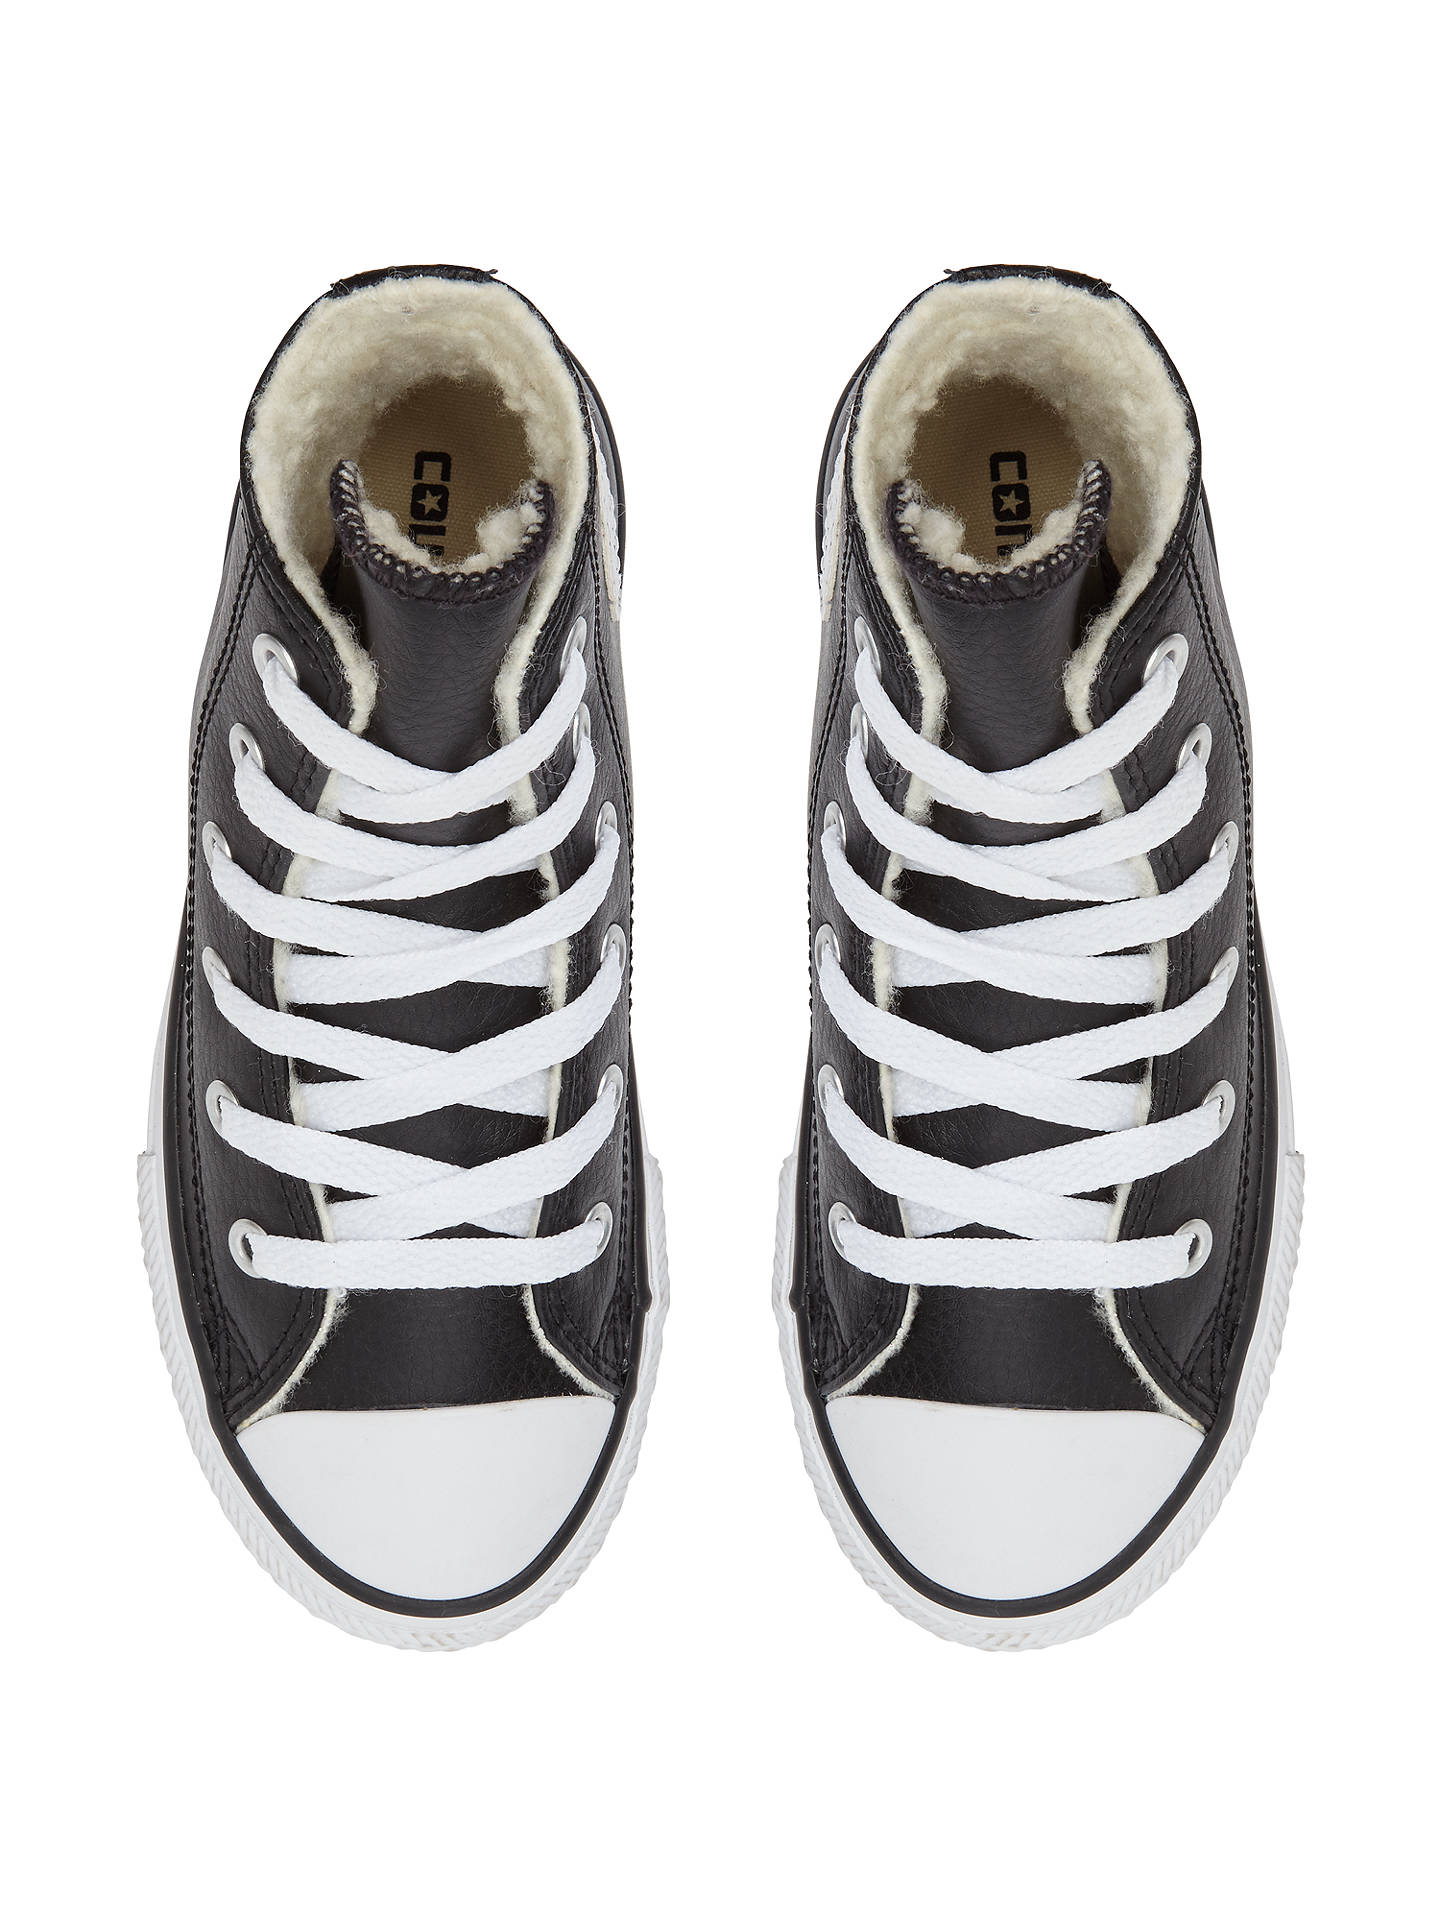 Converse Children S Chuck Taylor All Star Faux Fur Lined Trainers Black At John Lewis Partners